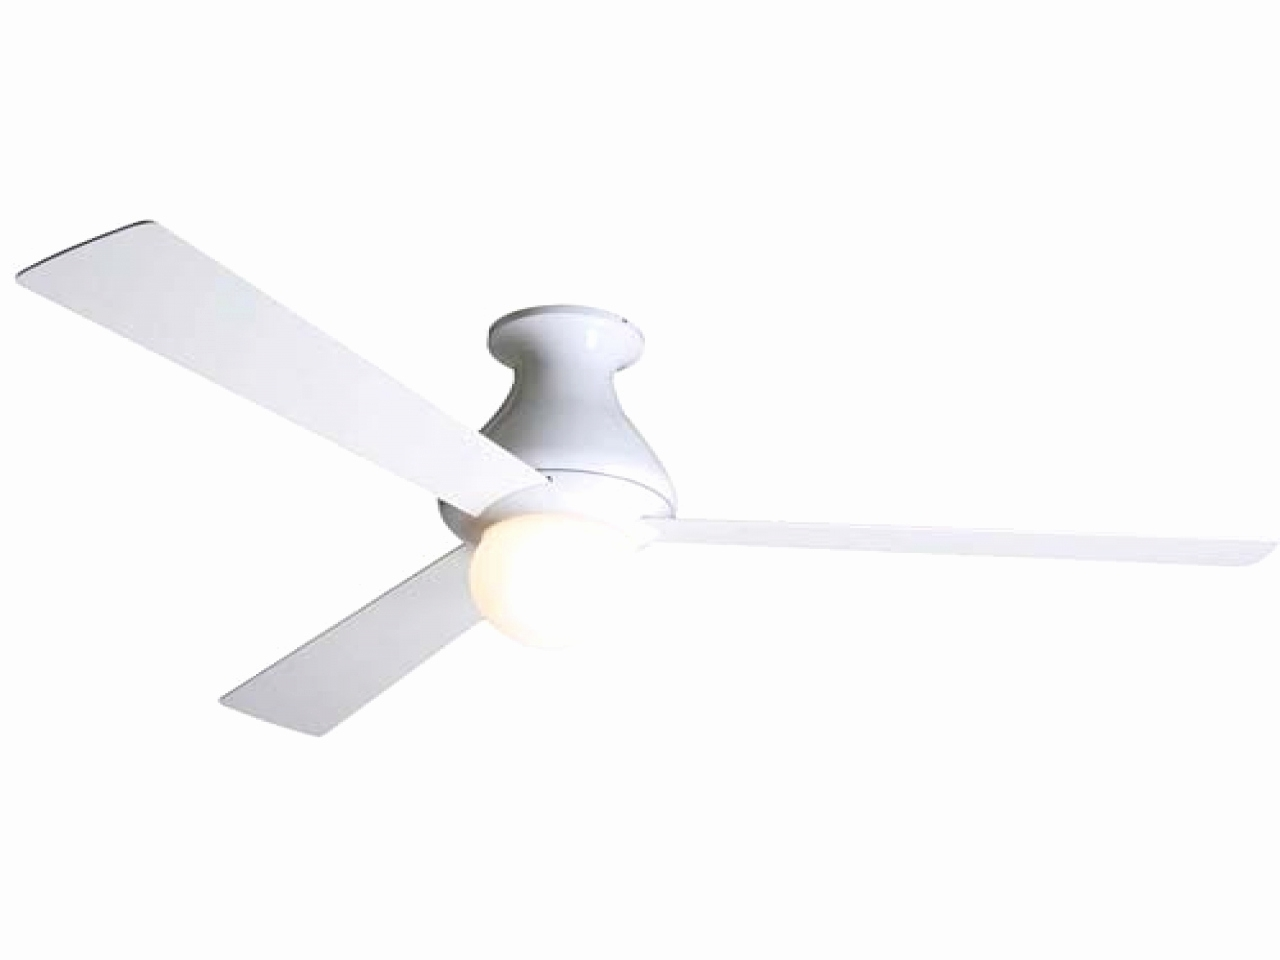 White Ceiling Fan With Light And Remote Unique Modern White Ceiling Inside 2019 Kmart Outdoor Ceiling Fans (View 18 of 20)